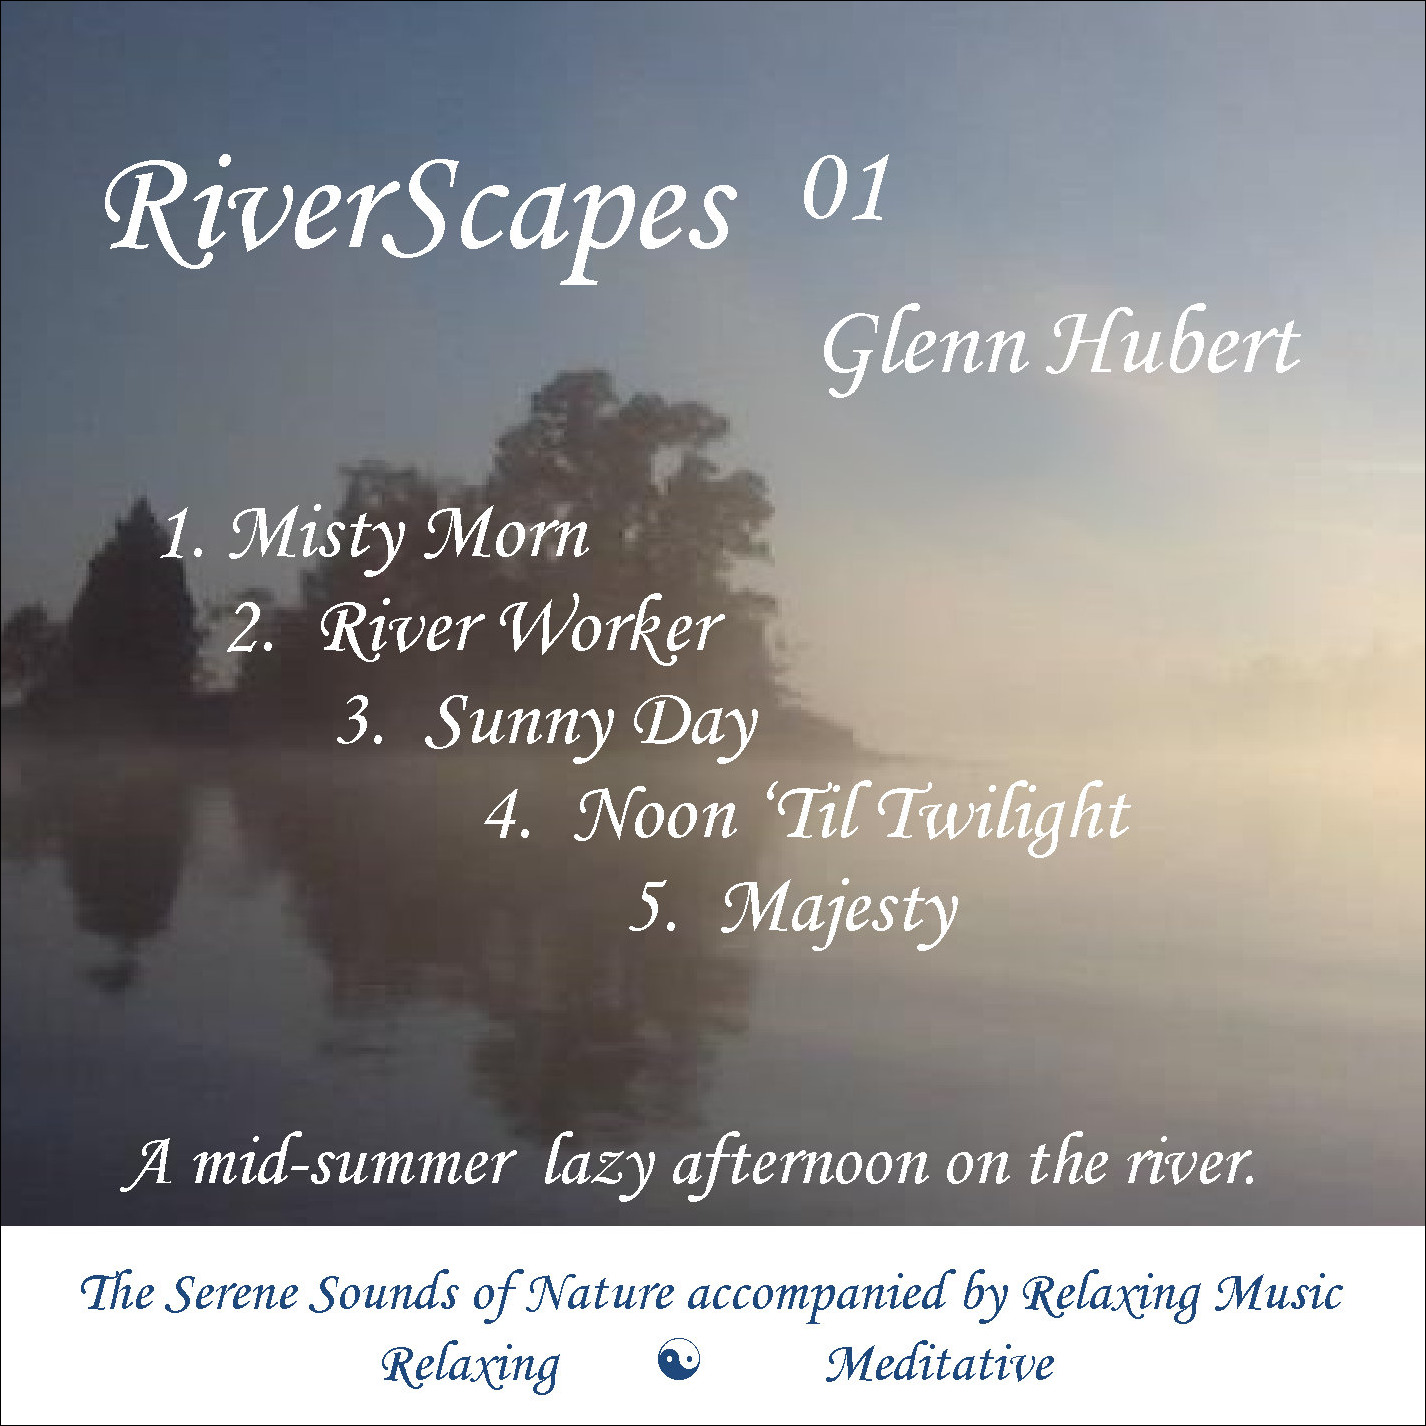 RiverScapes 01 - Glenn Hubert CD front